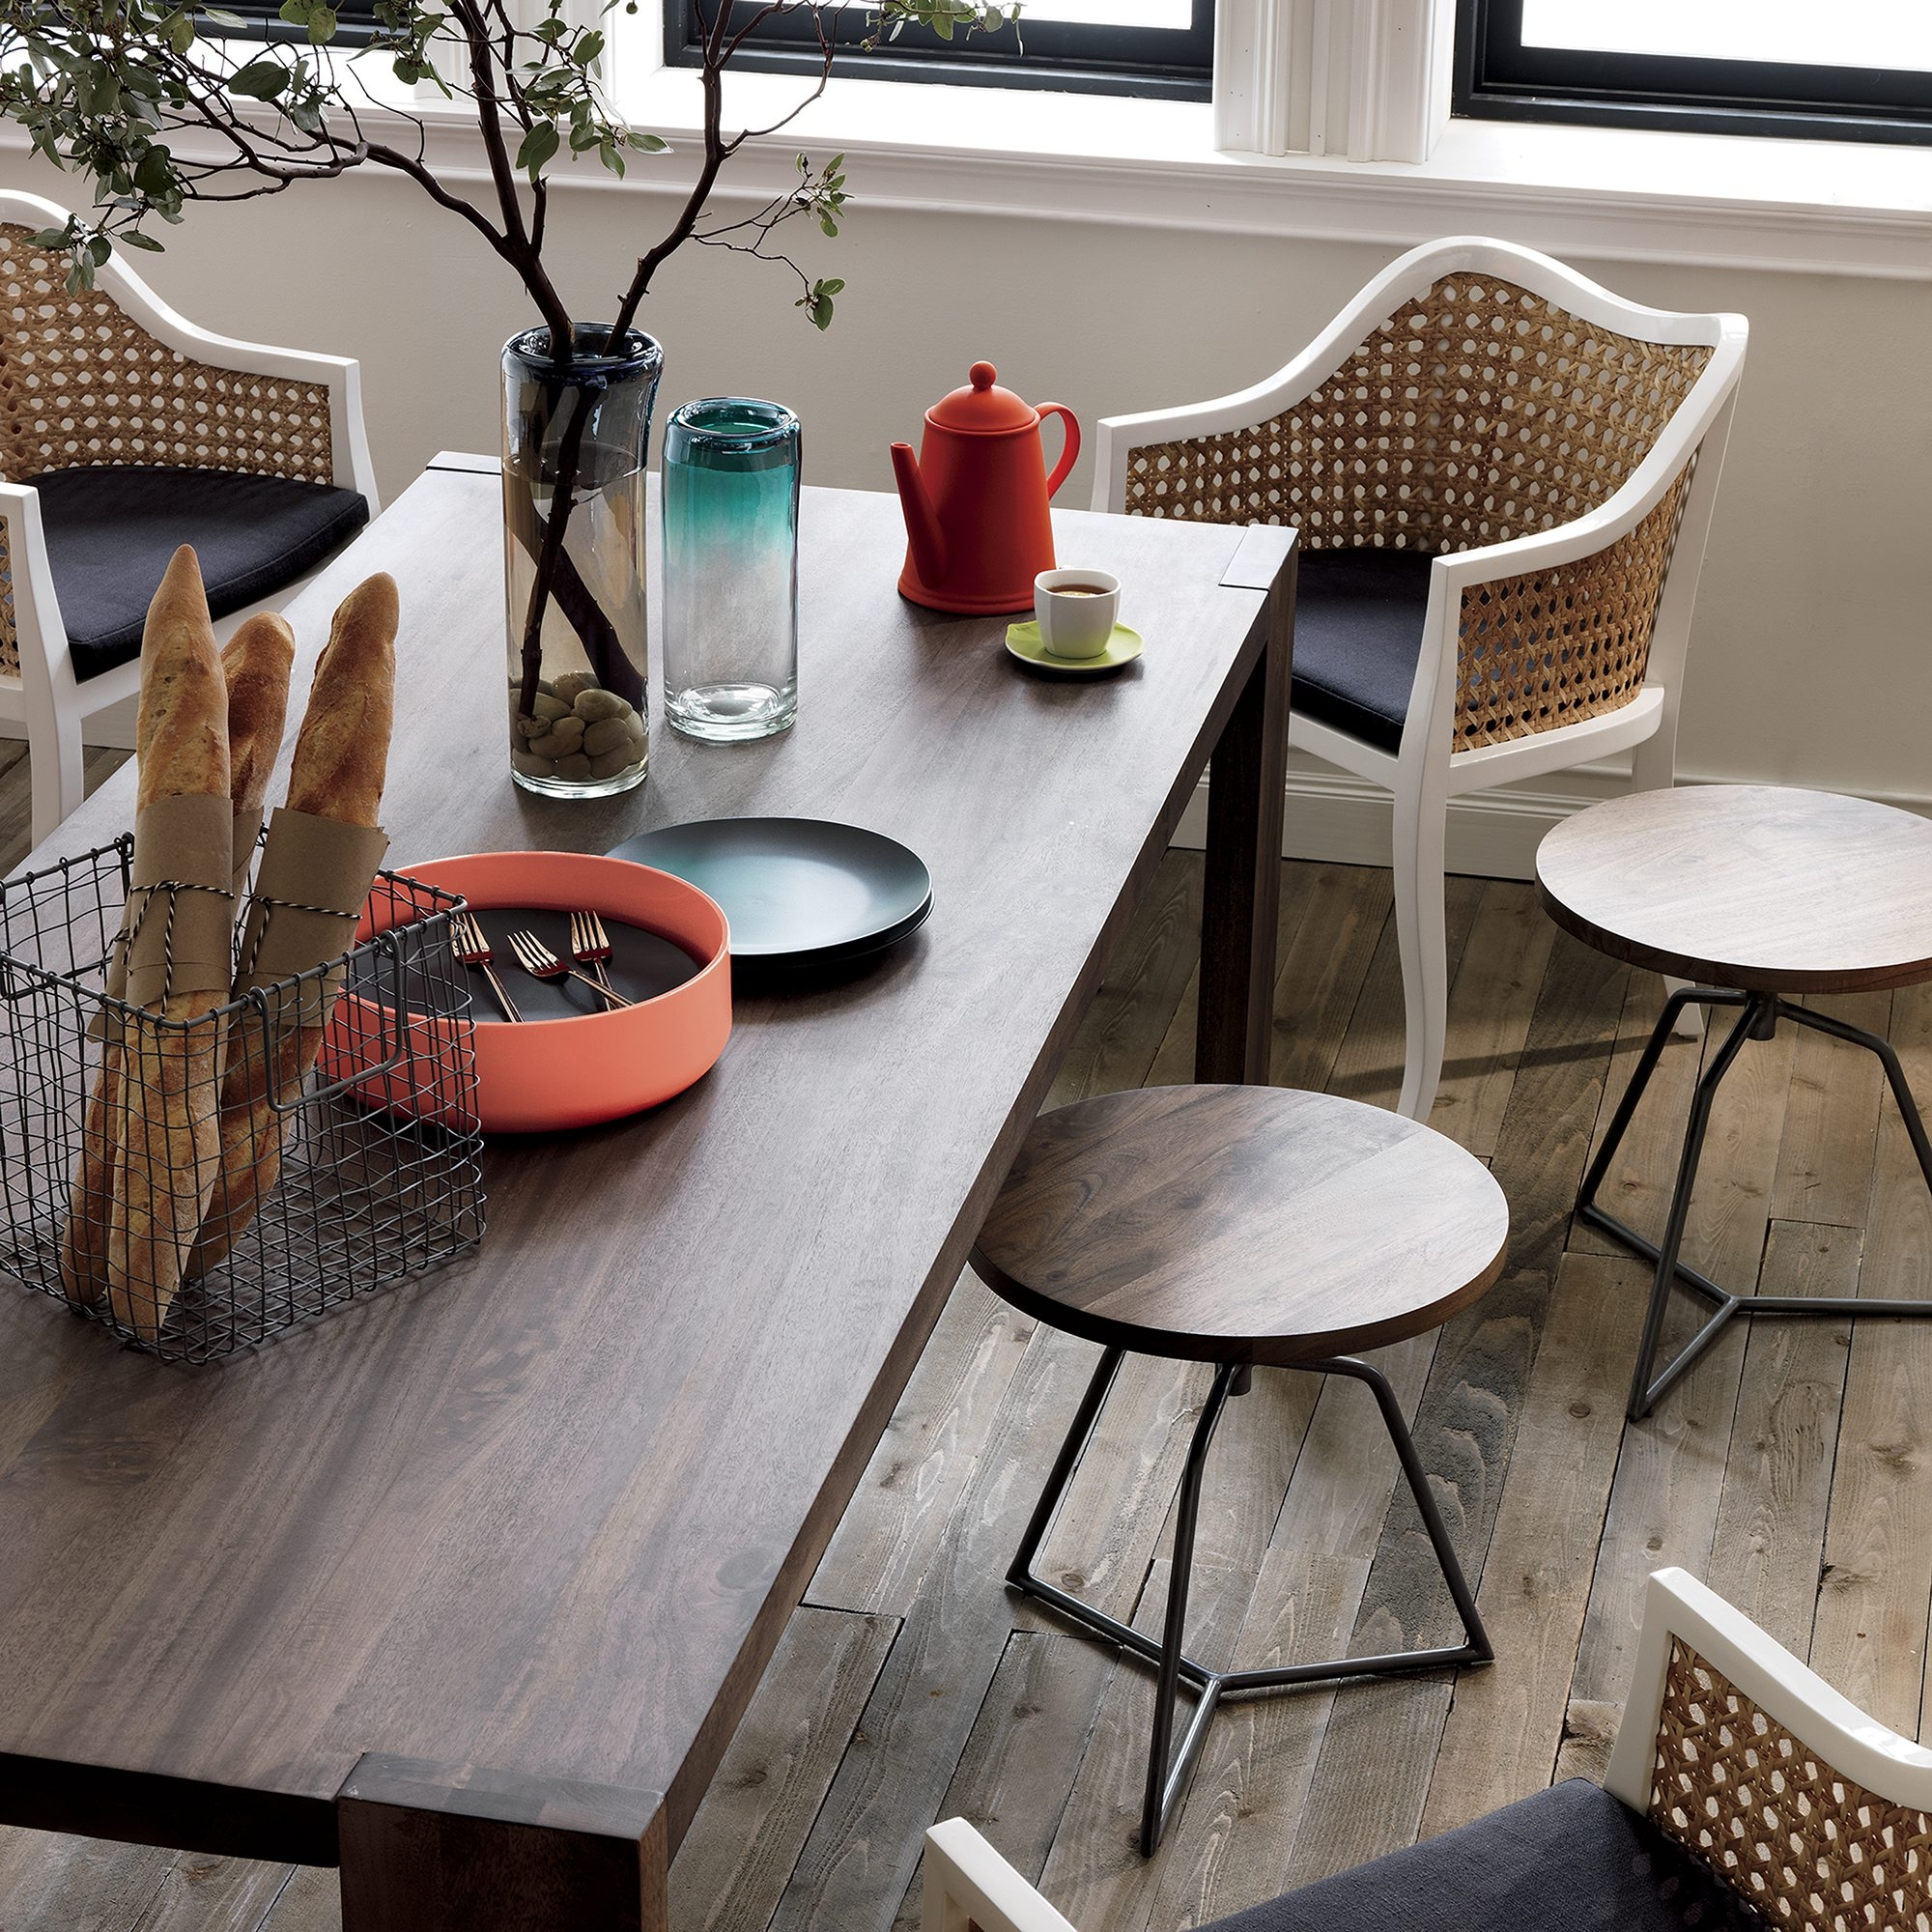 A black cushion adds even more style and comfort to the Tabayas cane side chair by CB2, www.cb2.com.